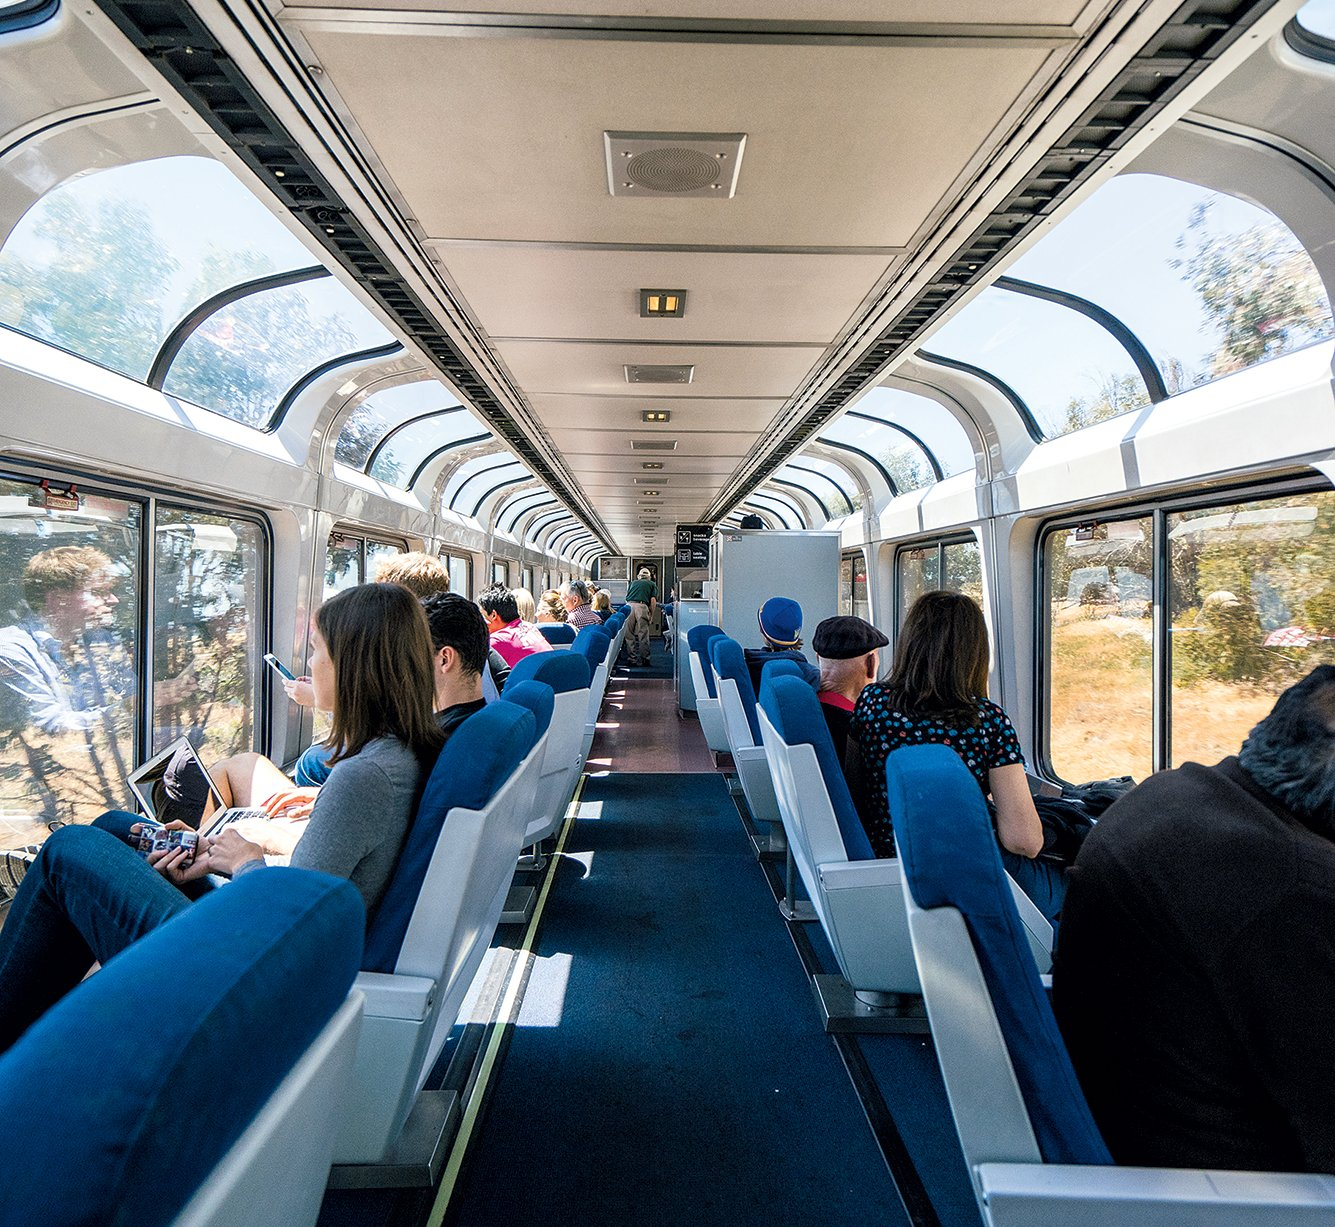 While double-decker trains with observation cars can't fit through the tunnels and under the wires found along the East Coast, they're common in wide-open spaces in the rest of the country. Photograph by Nigel Killeen/Getty Images.